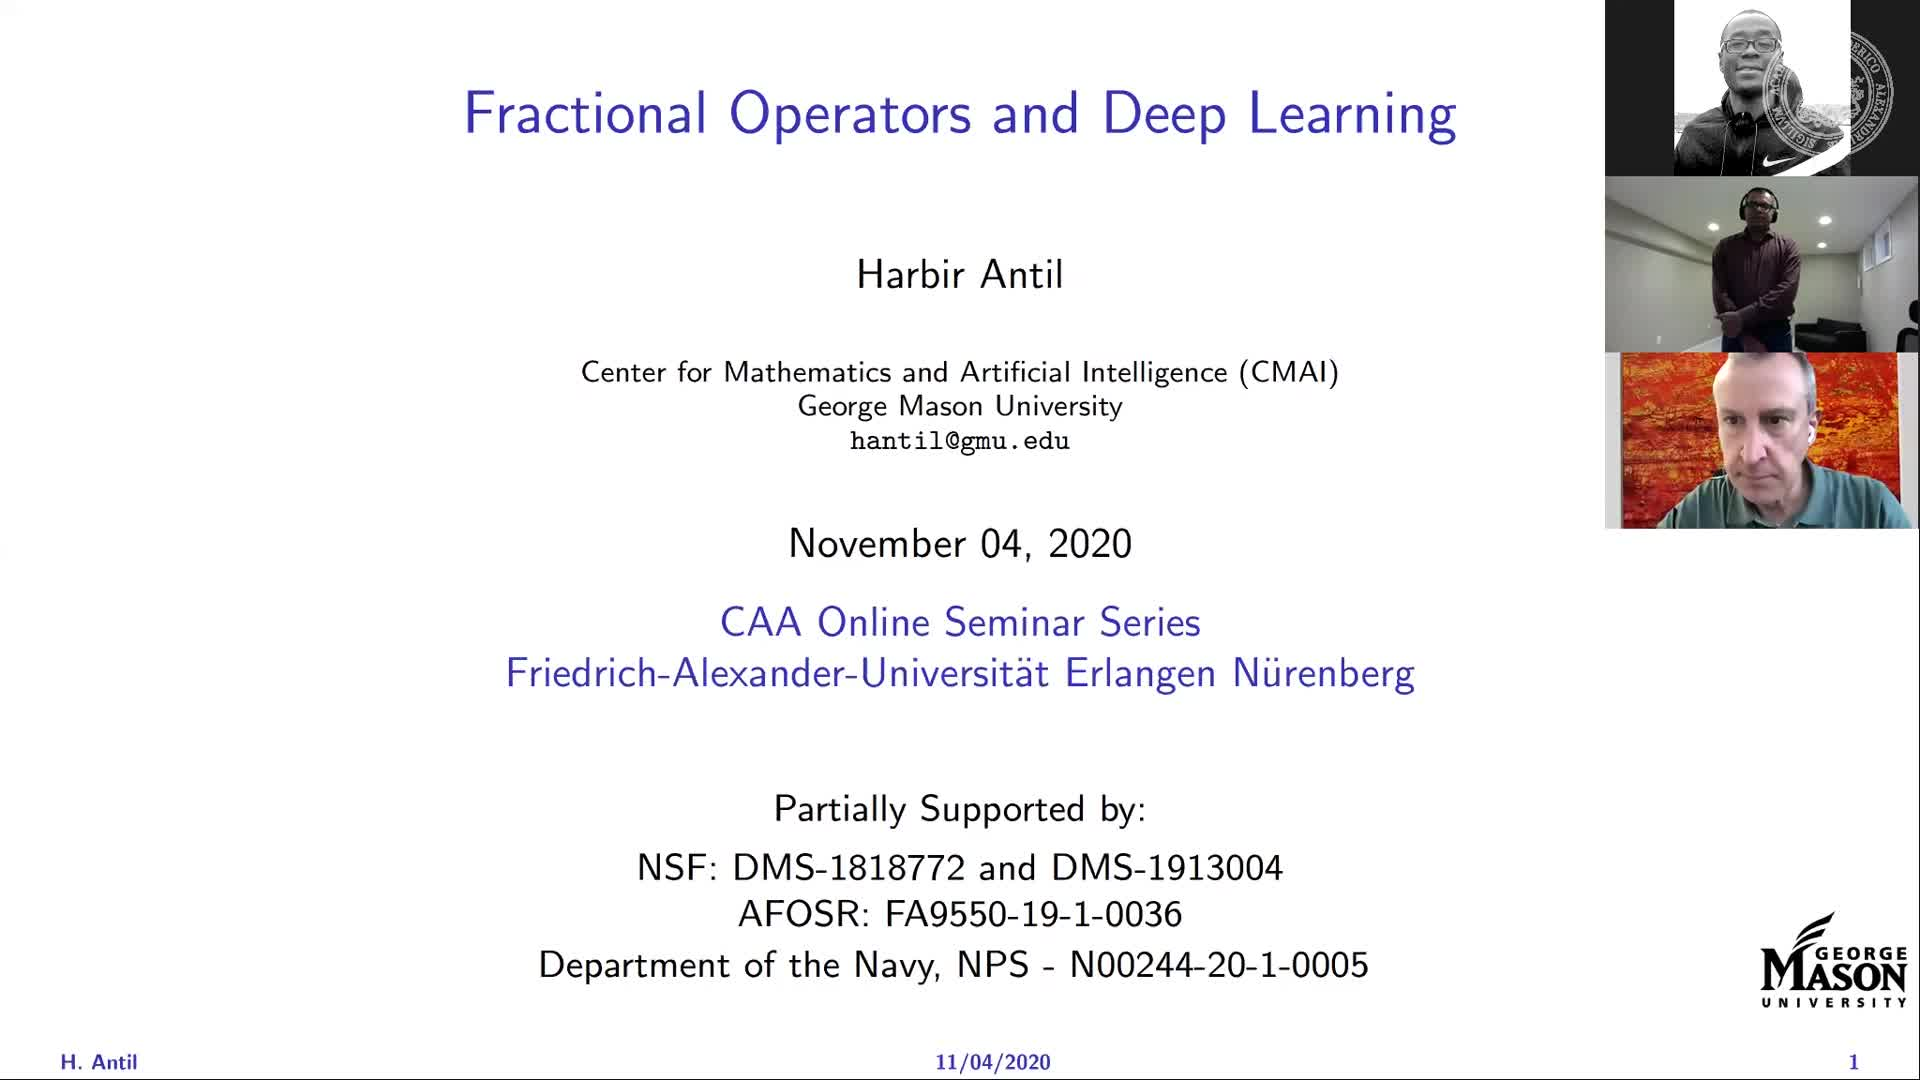 Deep Learning and Optimal Control with Fractional Operators (Harbir Antil, George Mason University) preview image